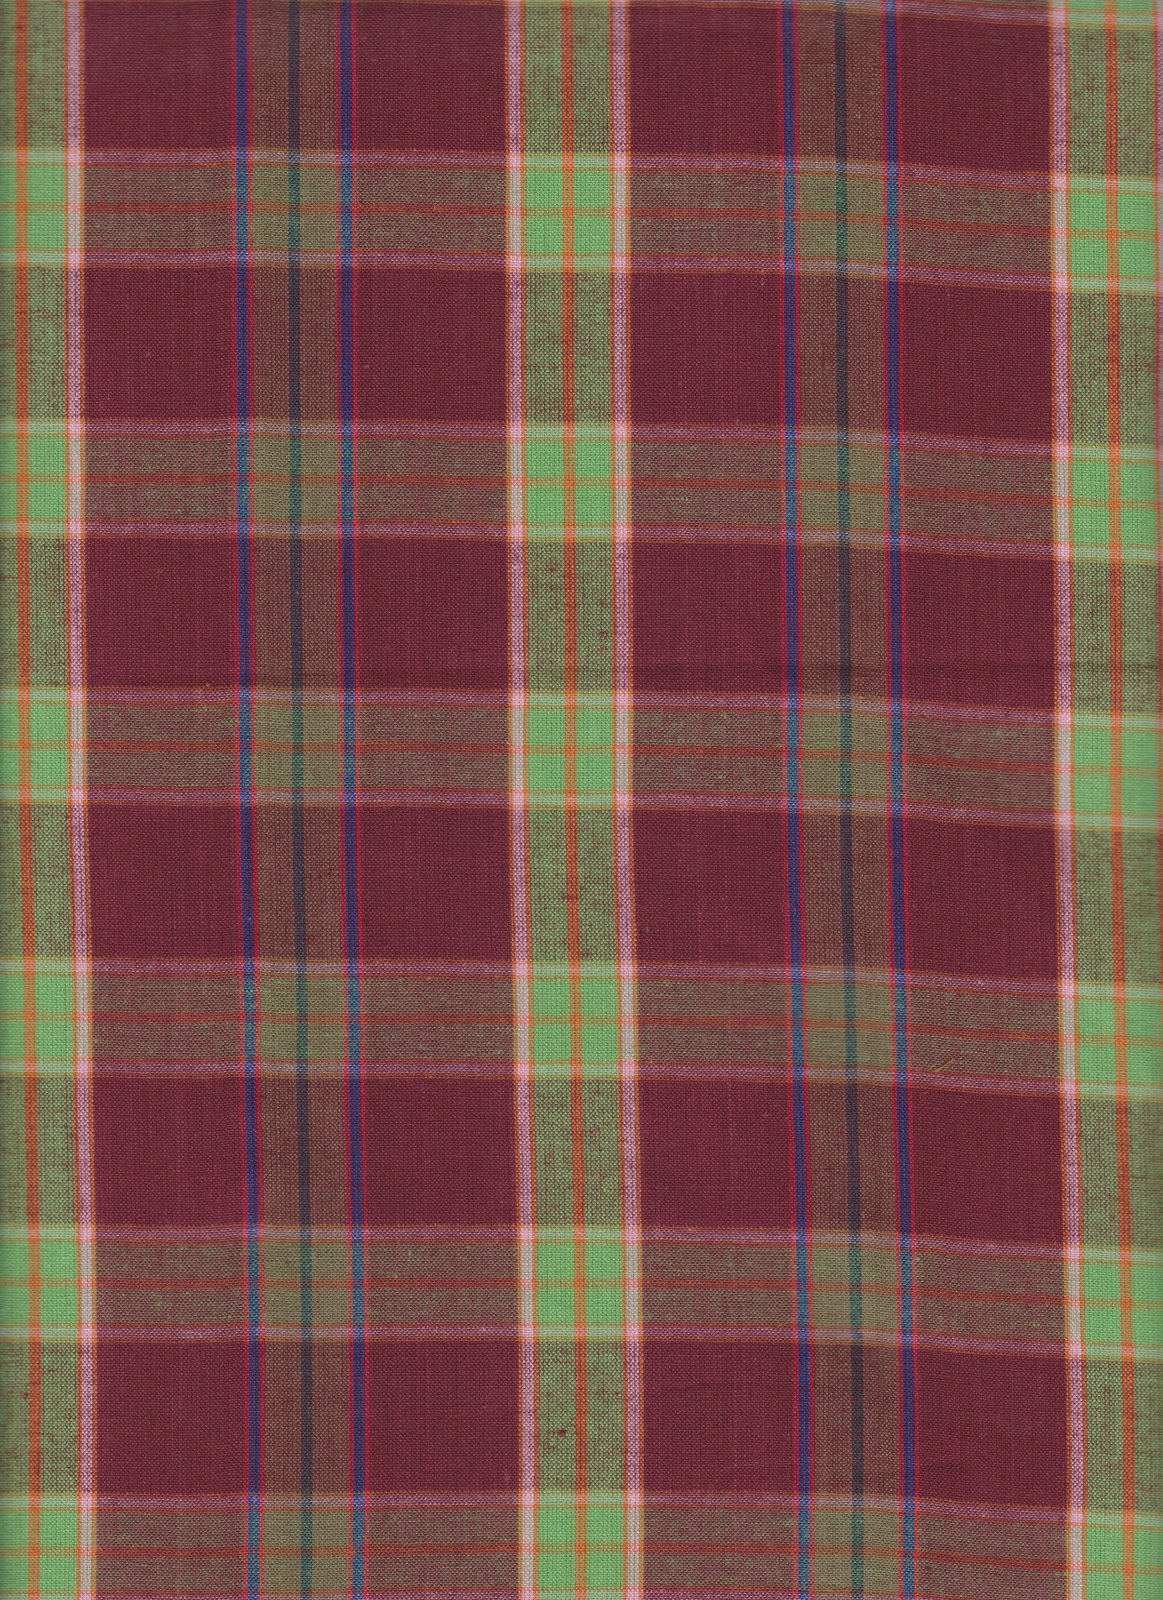 PROMO* TC-Santa Fe Plaids SF-314 Wine - Plaid